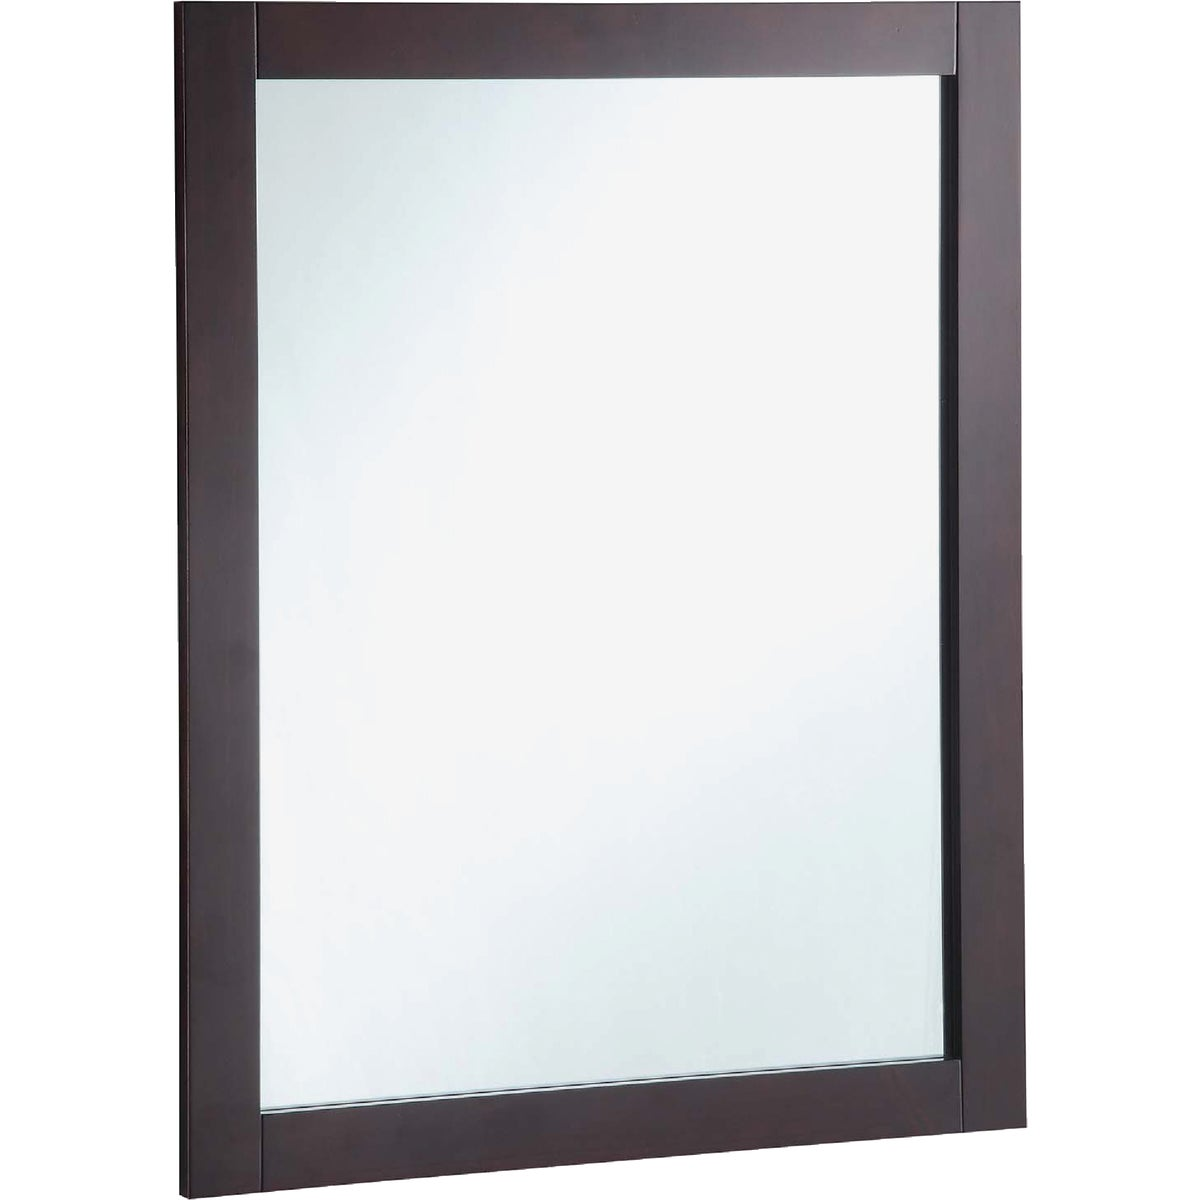 20X28 ESPRES WALL MIRROR